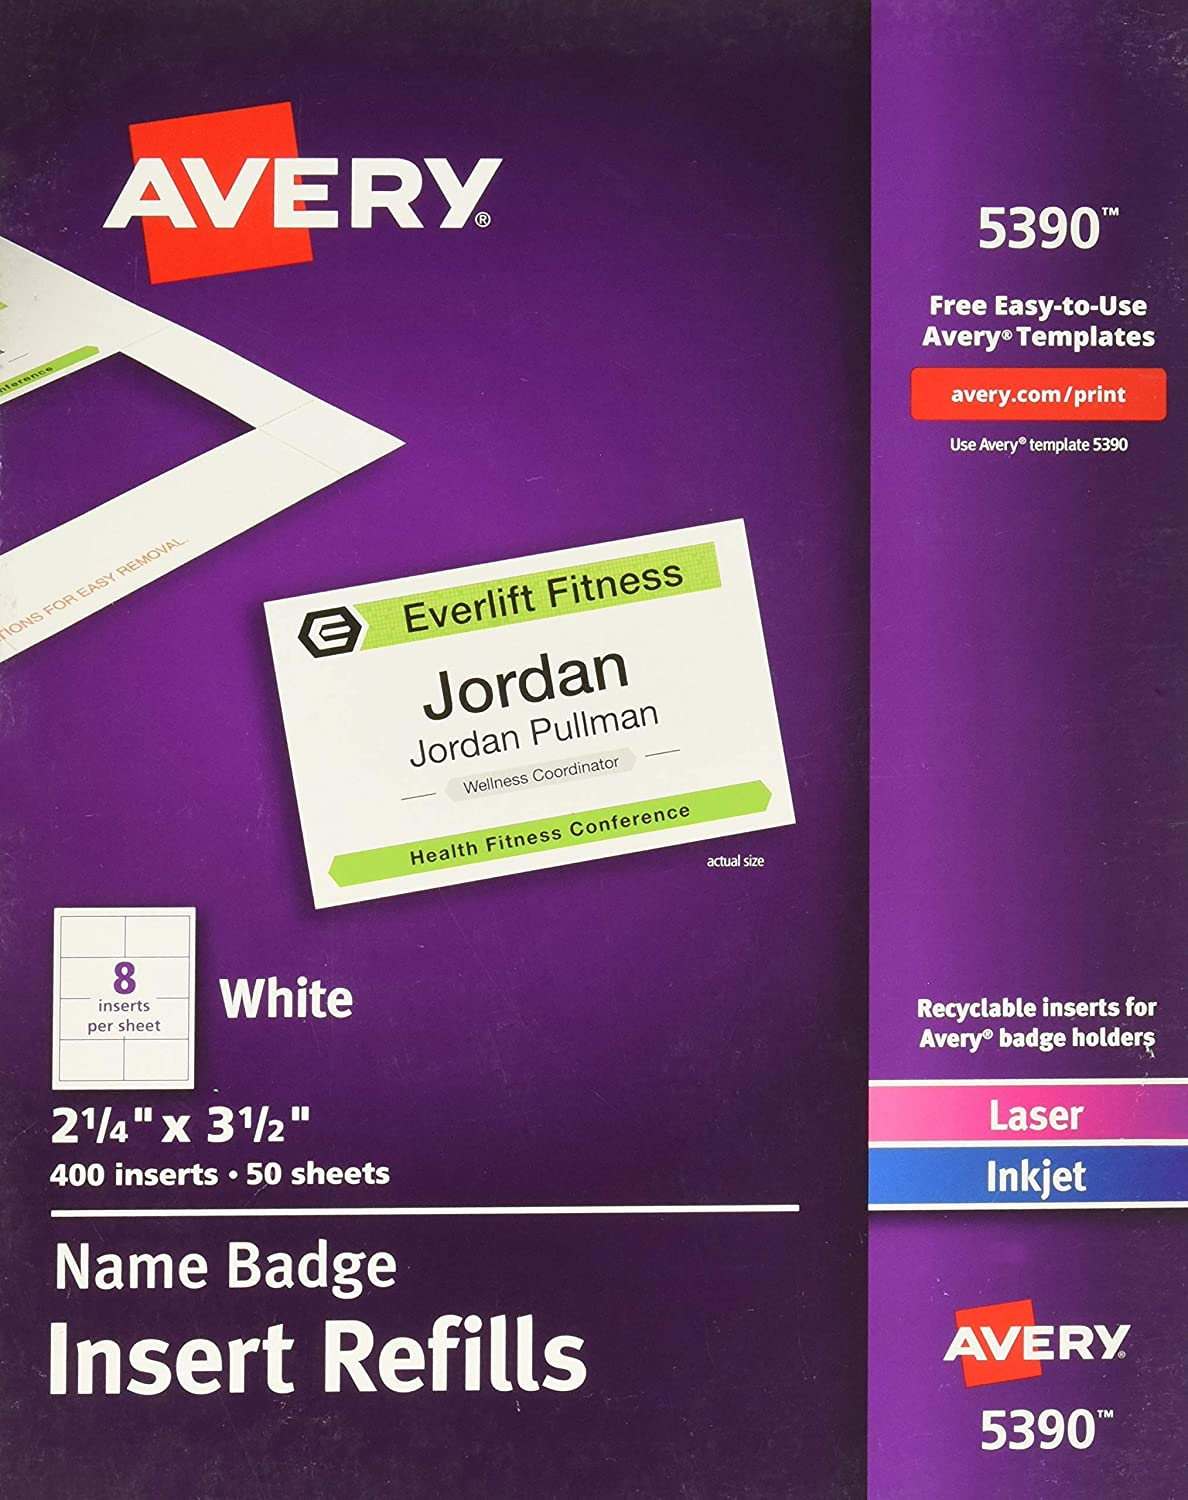 Avery Templates For Name Badges